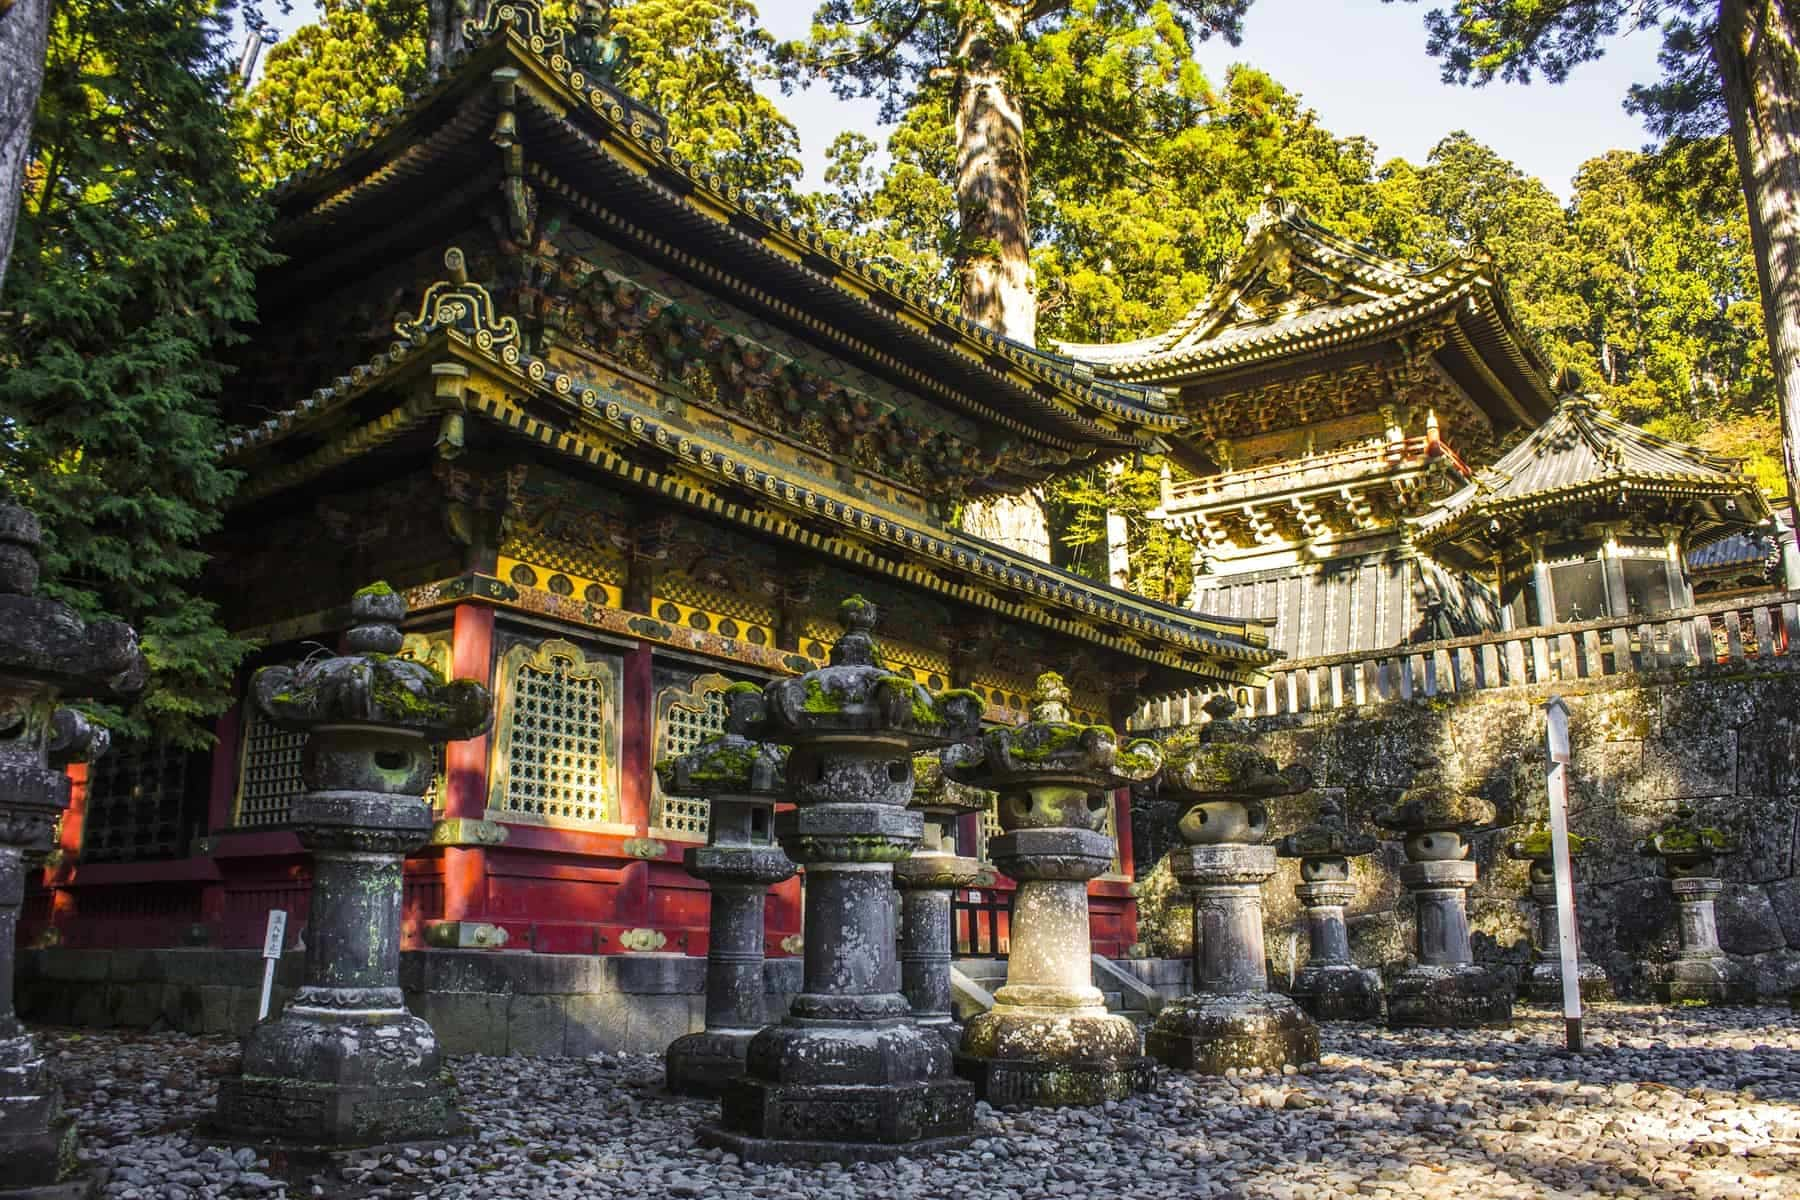 Tosho-gu, a Shinto shrine dedicated to Tokugawa Ieyasu, the founder of the Tokugawa shogunate, located in Nikko, Japan. A World Heritage Site since 1999